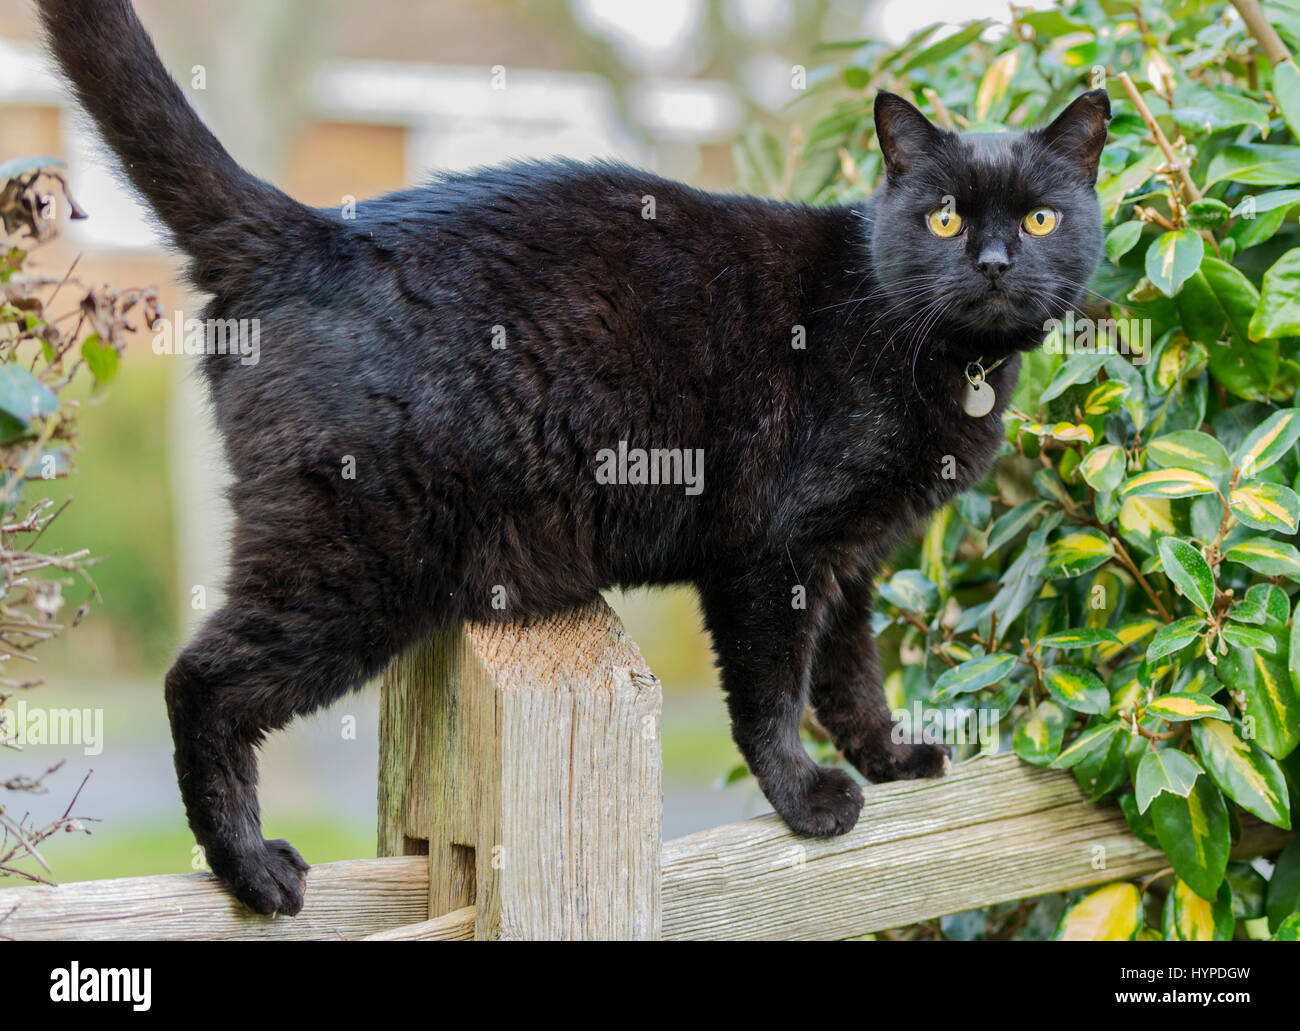 Black cat standing on a fence looking at the camera. - Stock Image